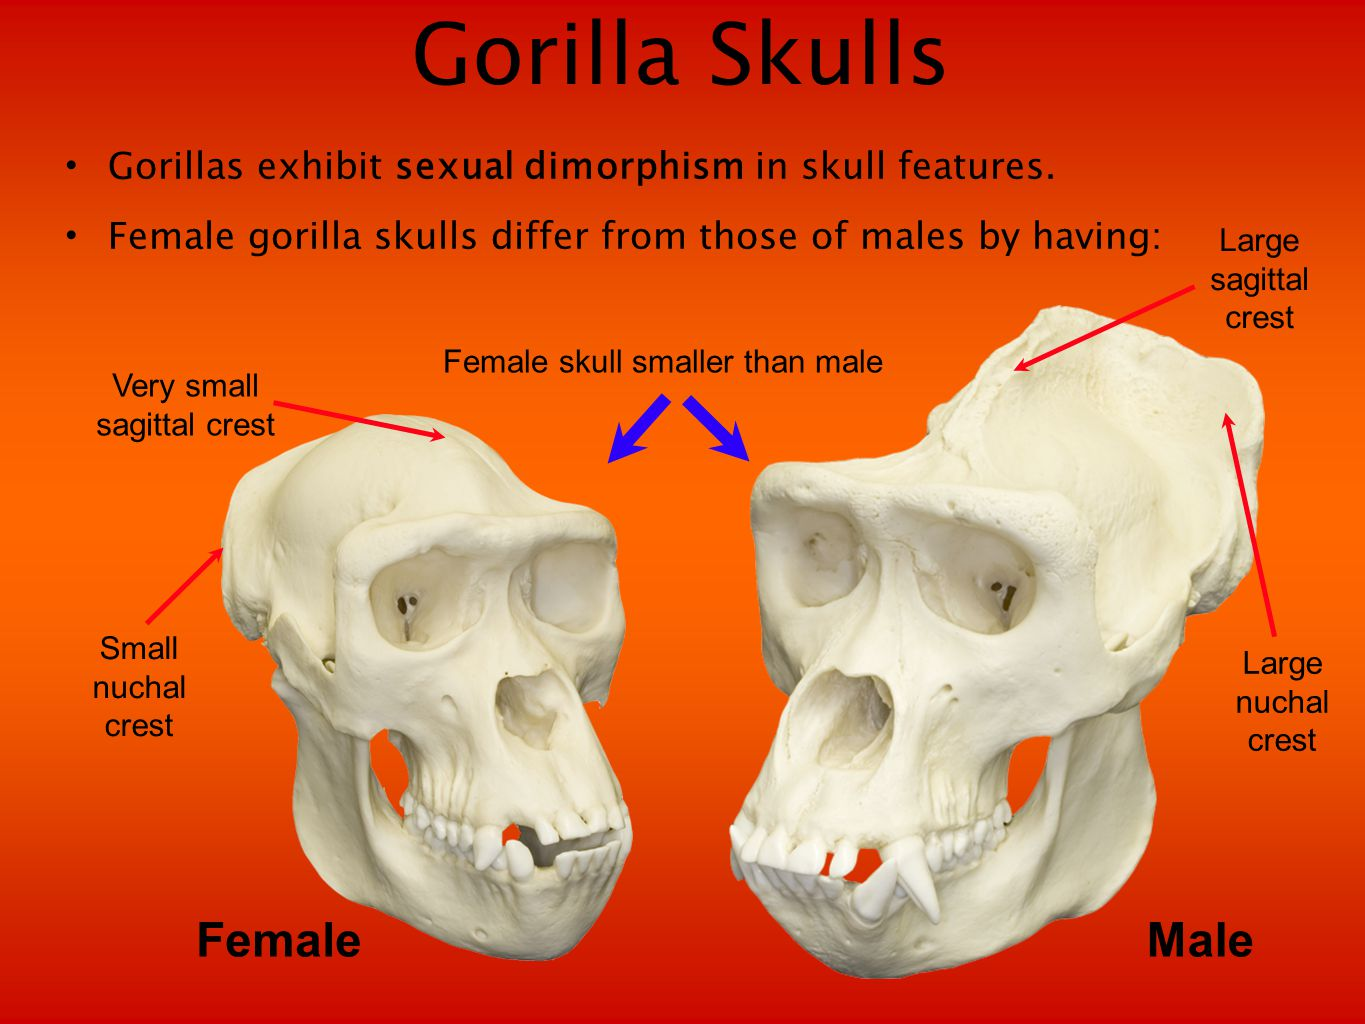 Gorilla Skulls Gorillas exhibit sexual dimorphism in skull features.